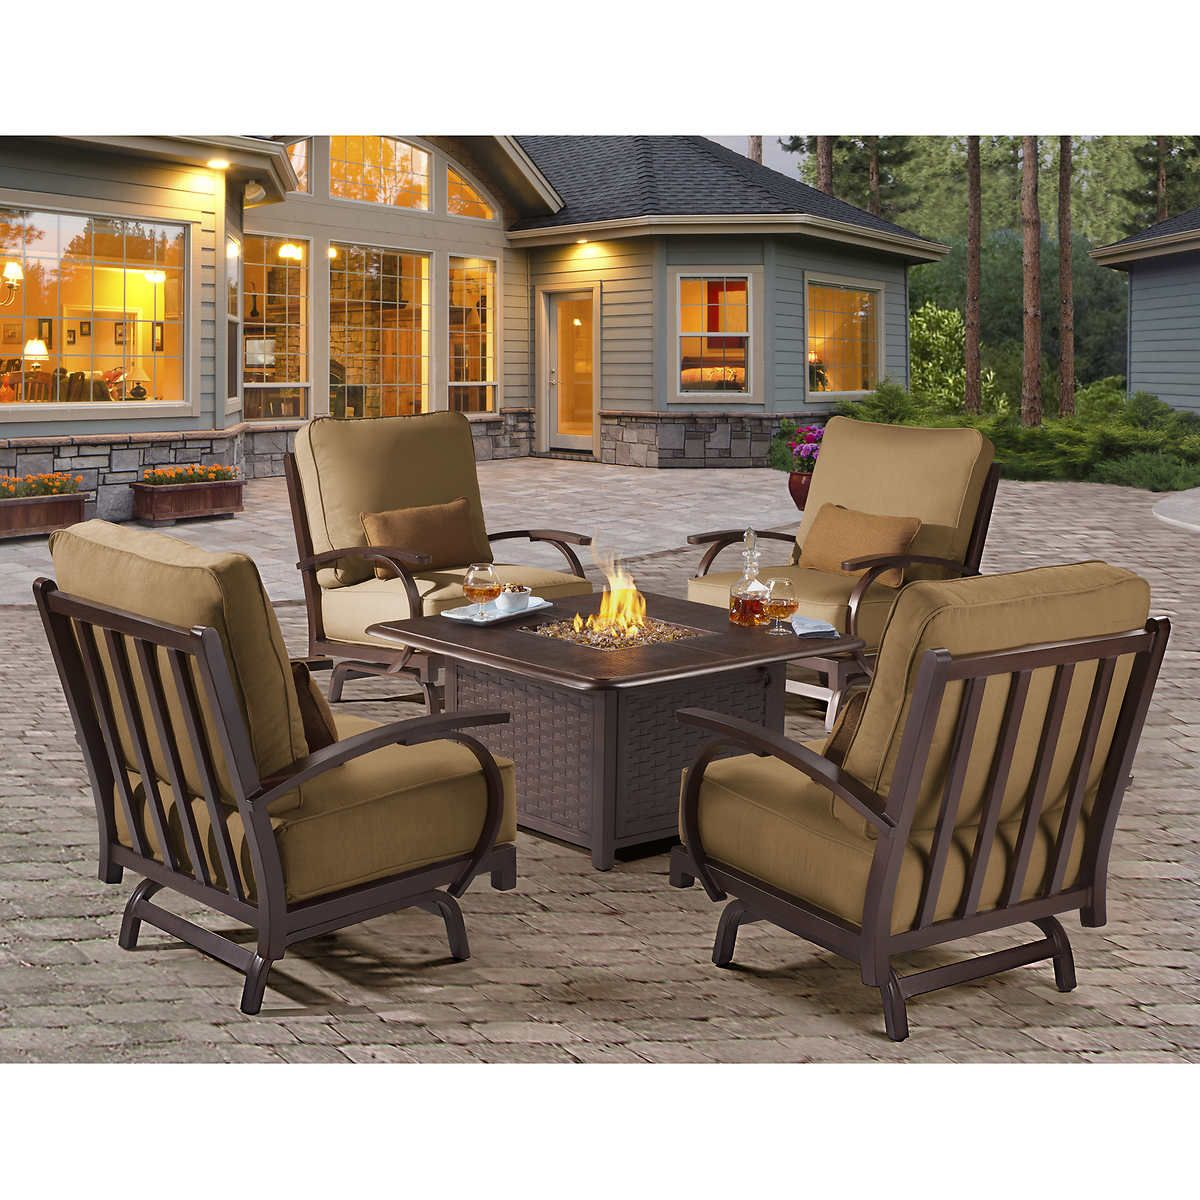 Costco Patio Furniture With Fire Pit Fire Pit Table And Chairs